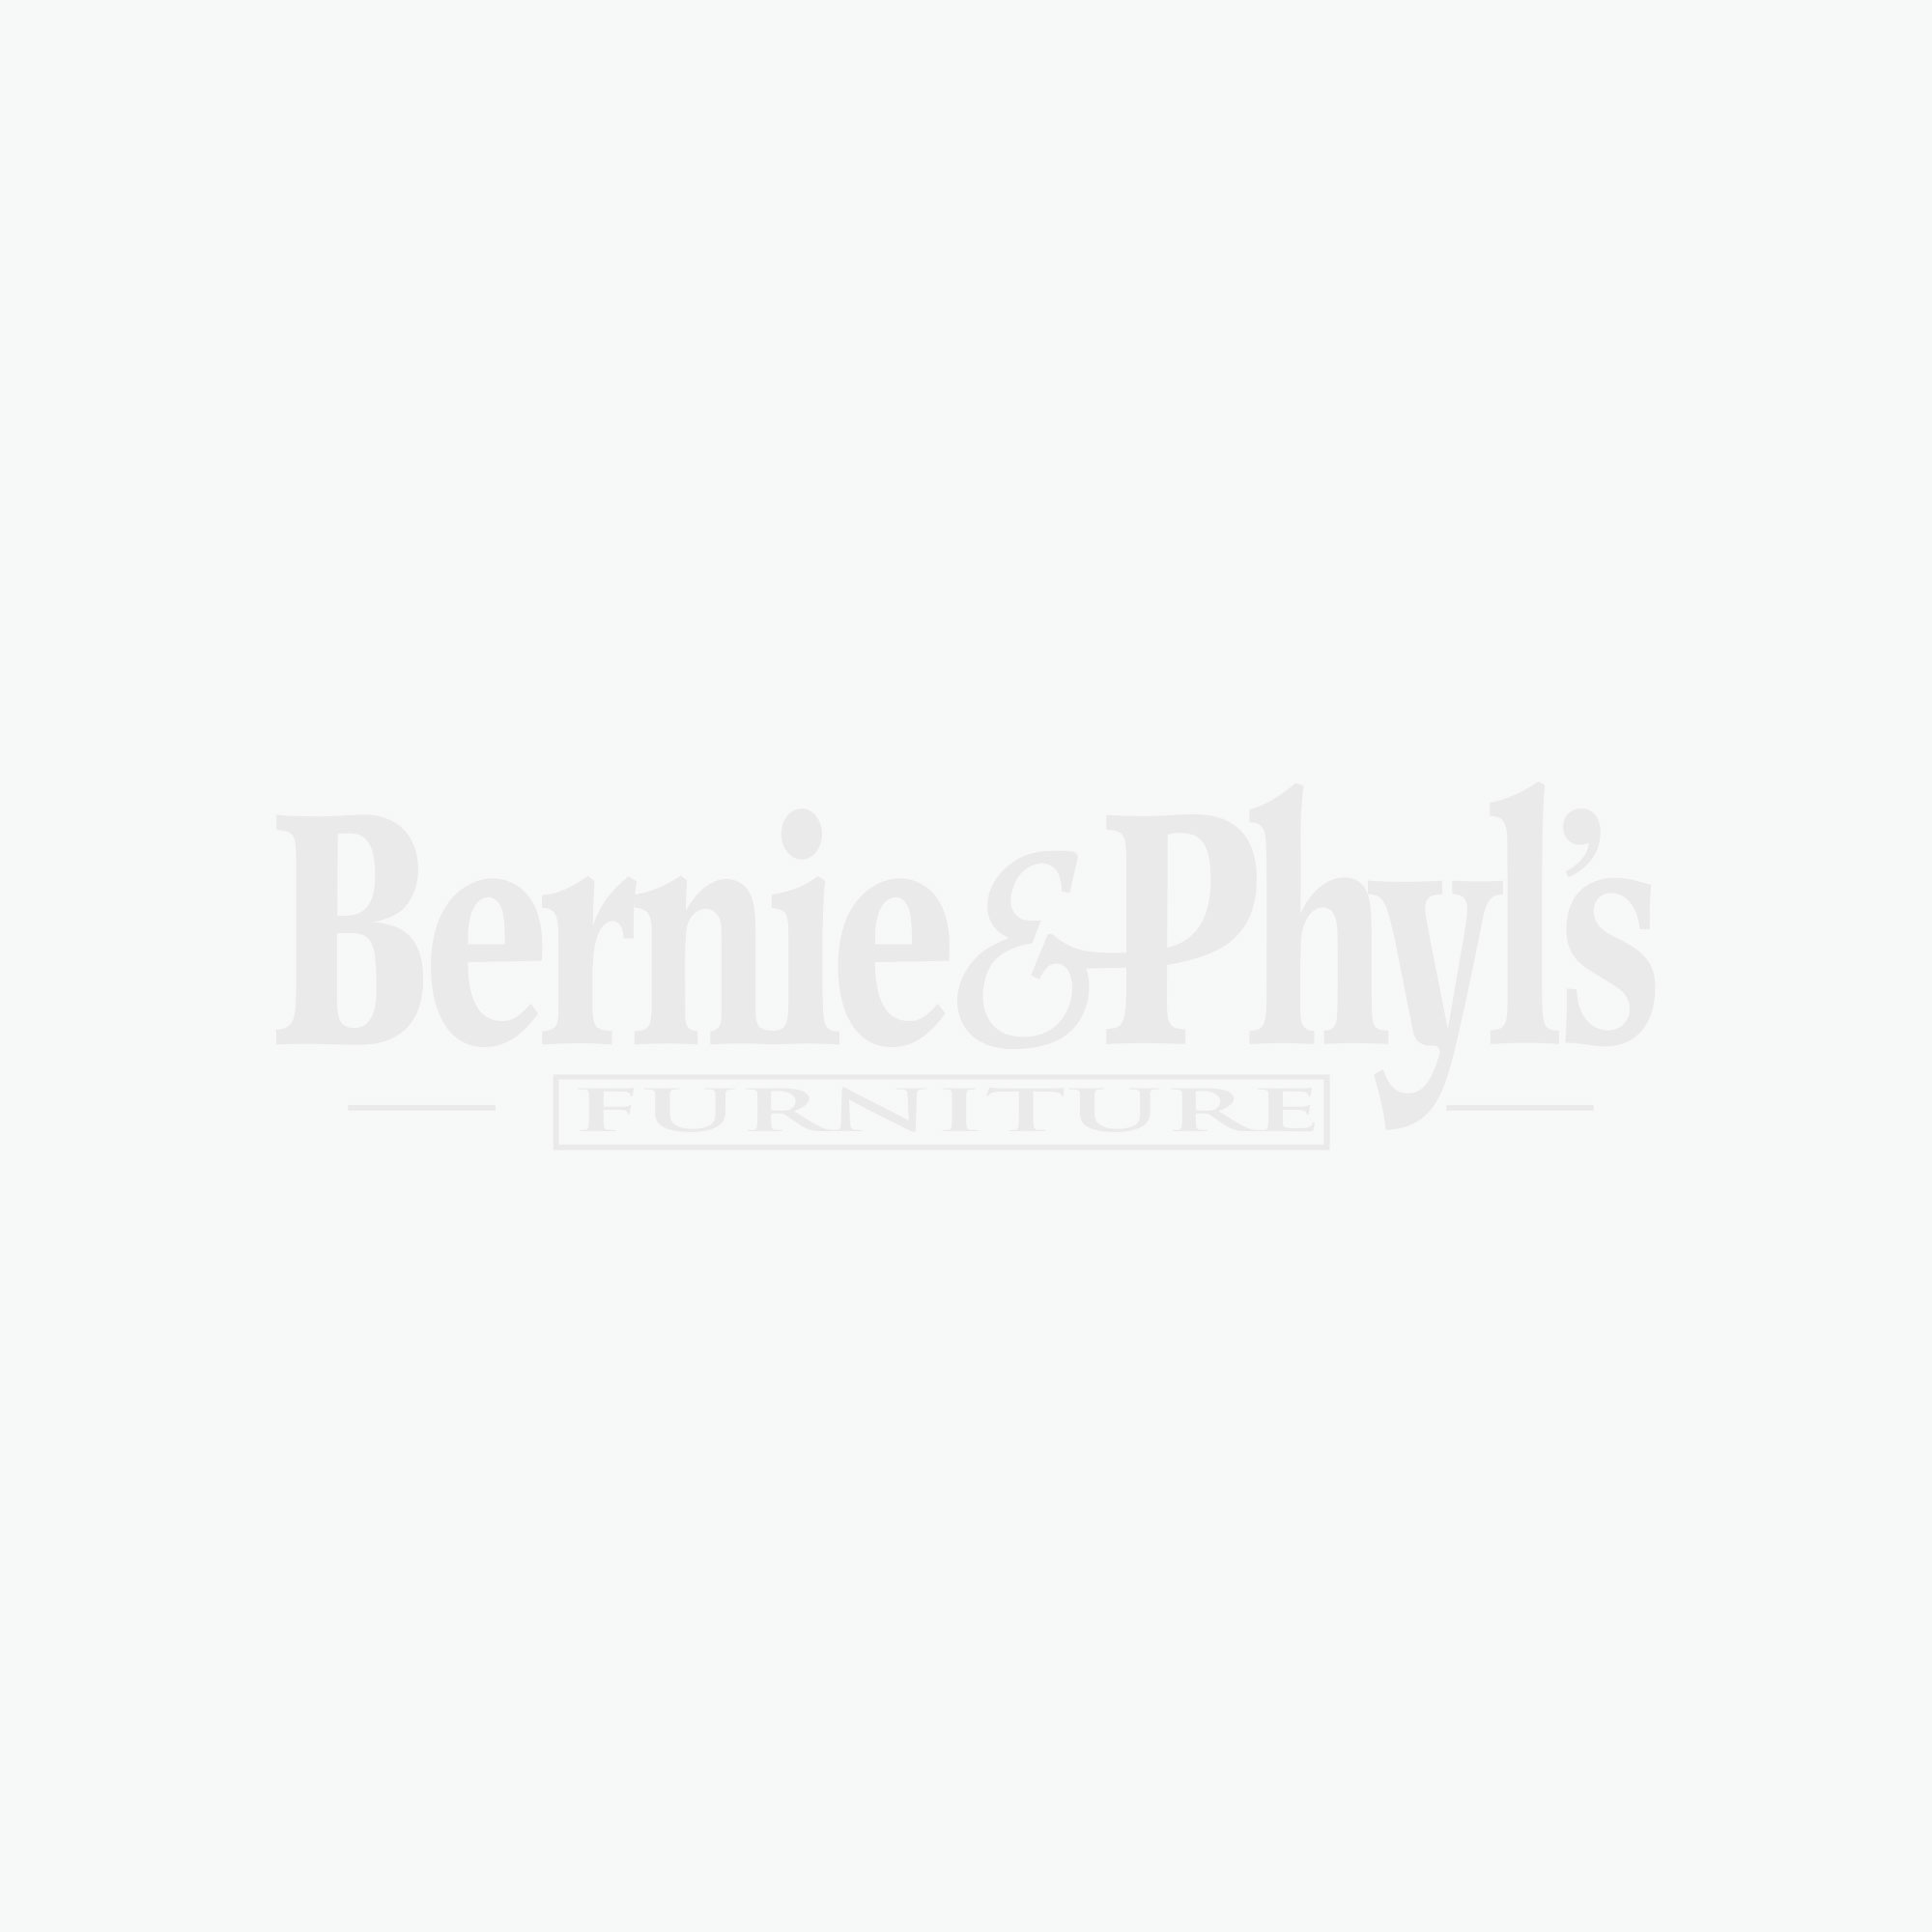 Stuman Dining Uph Side Chair - Medium Brown - (Set of 2) - D293-01 by Ashley Furniture Signature Design